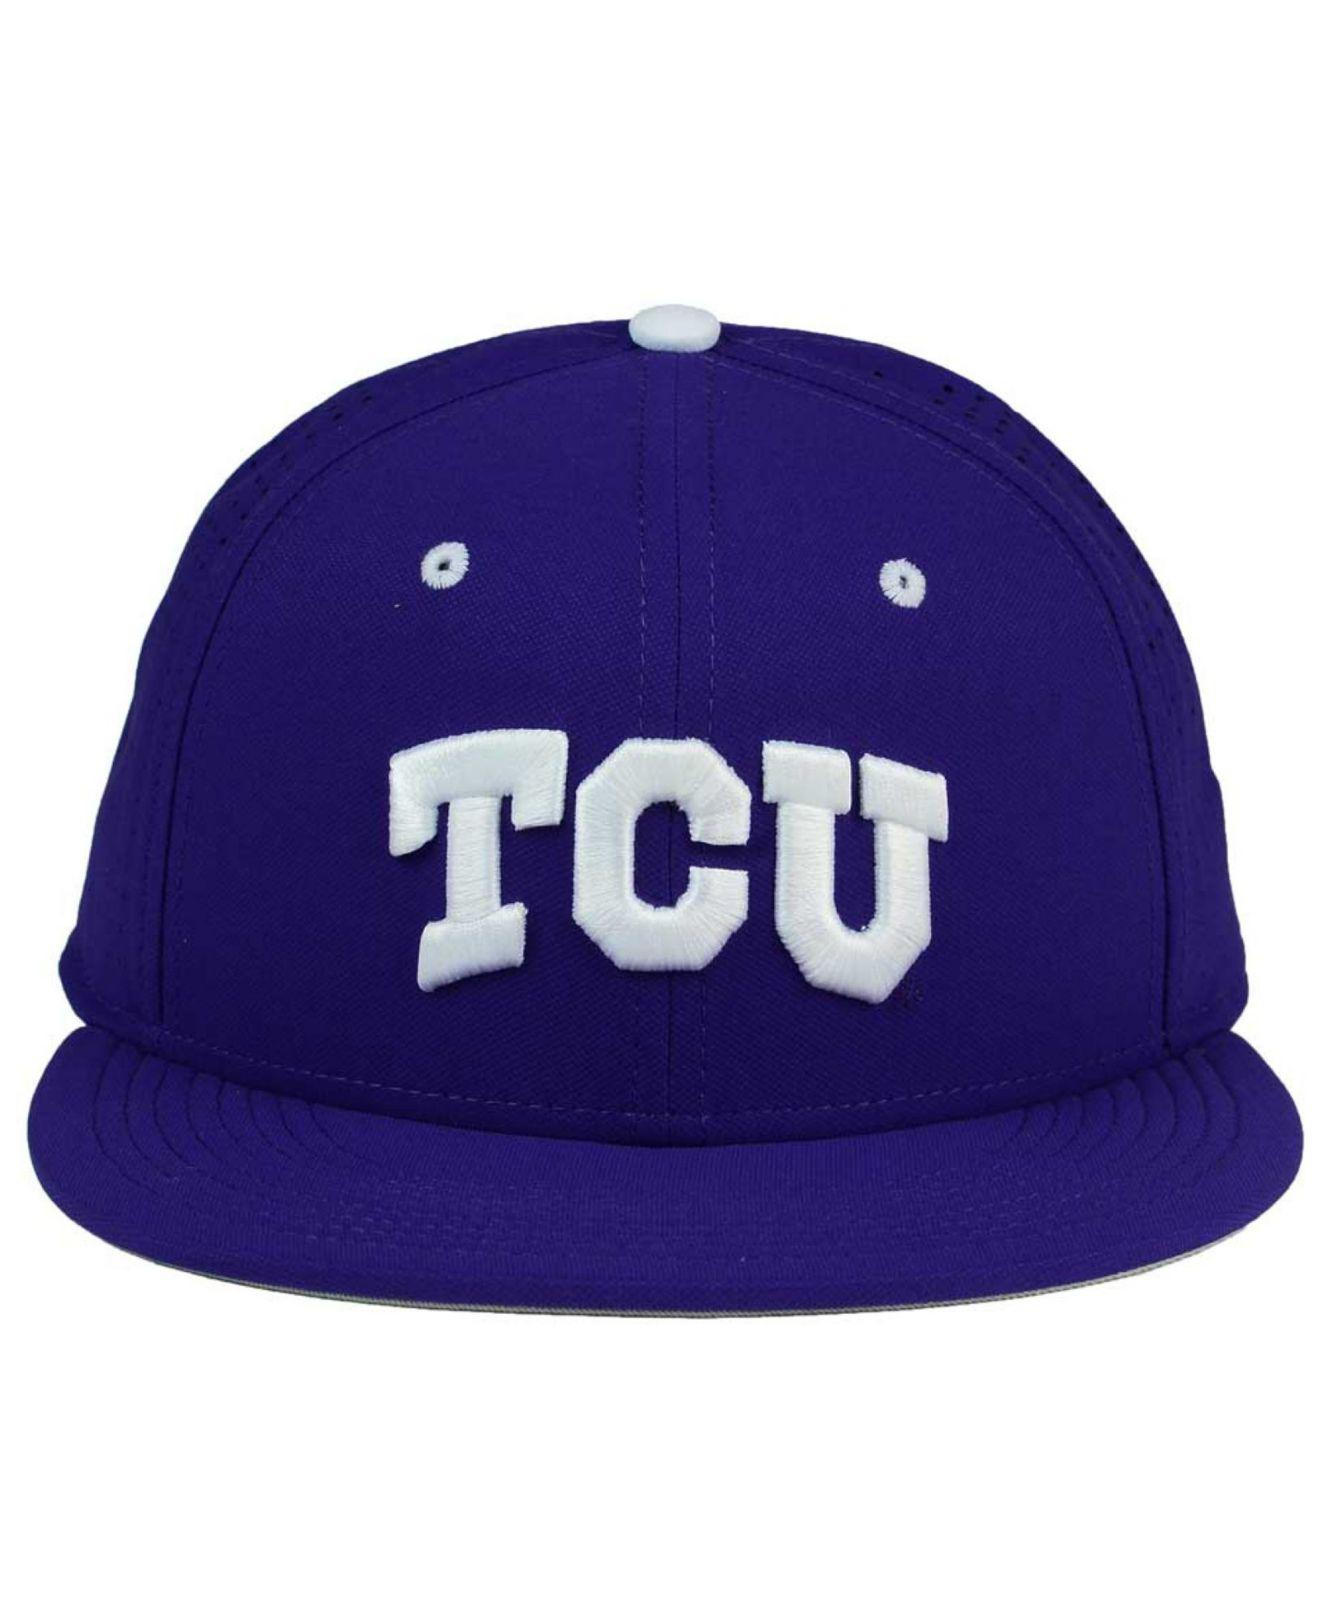 cac1f9f6cee5b ... buy lyst nike tcu horned frogs true vapor fitted cap in purple for men  save 42.857142857142854